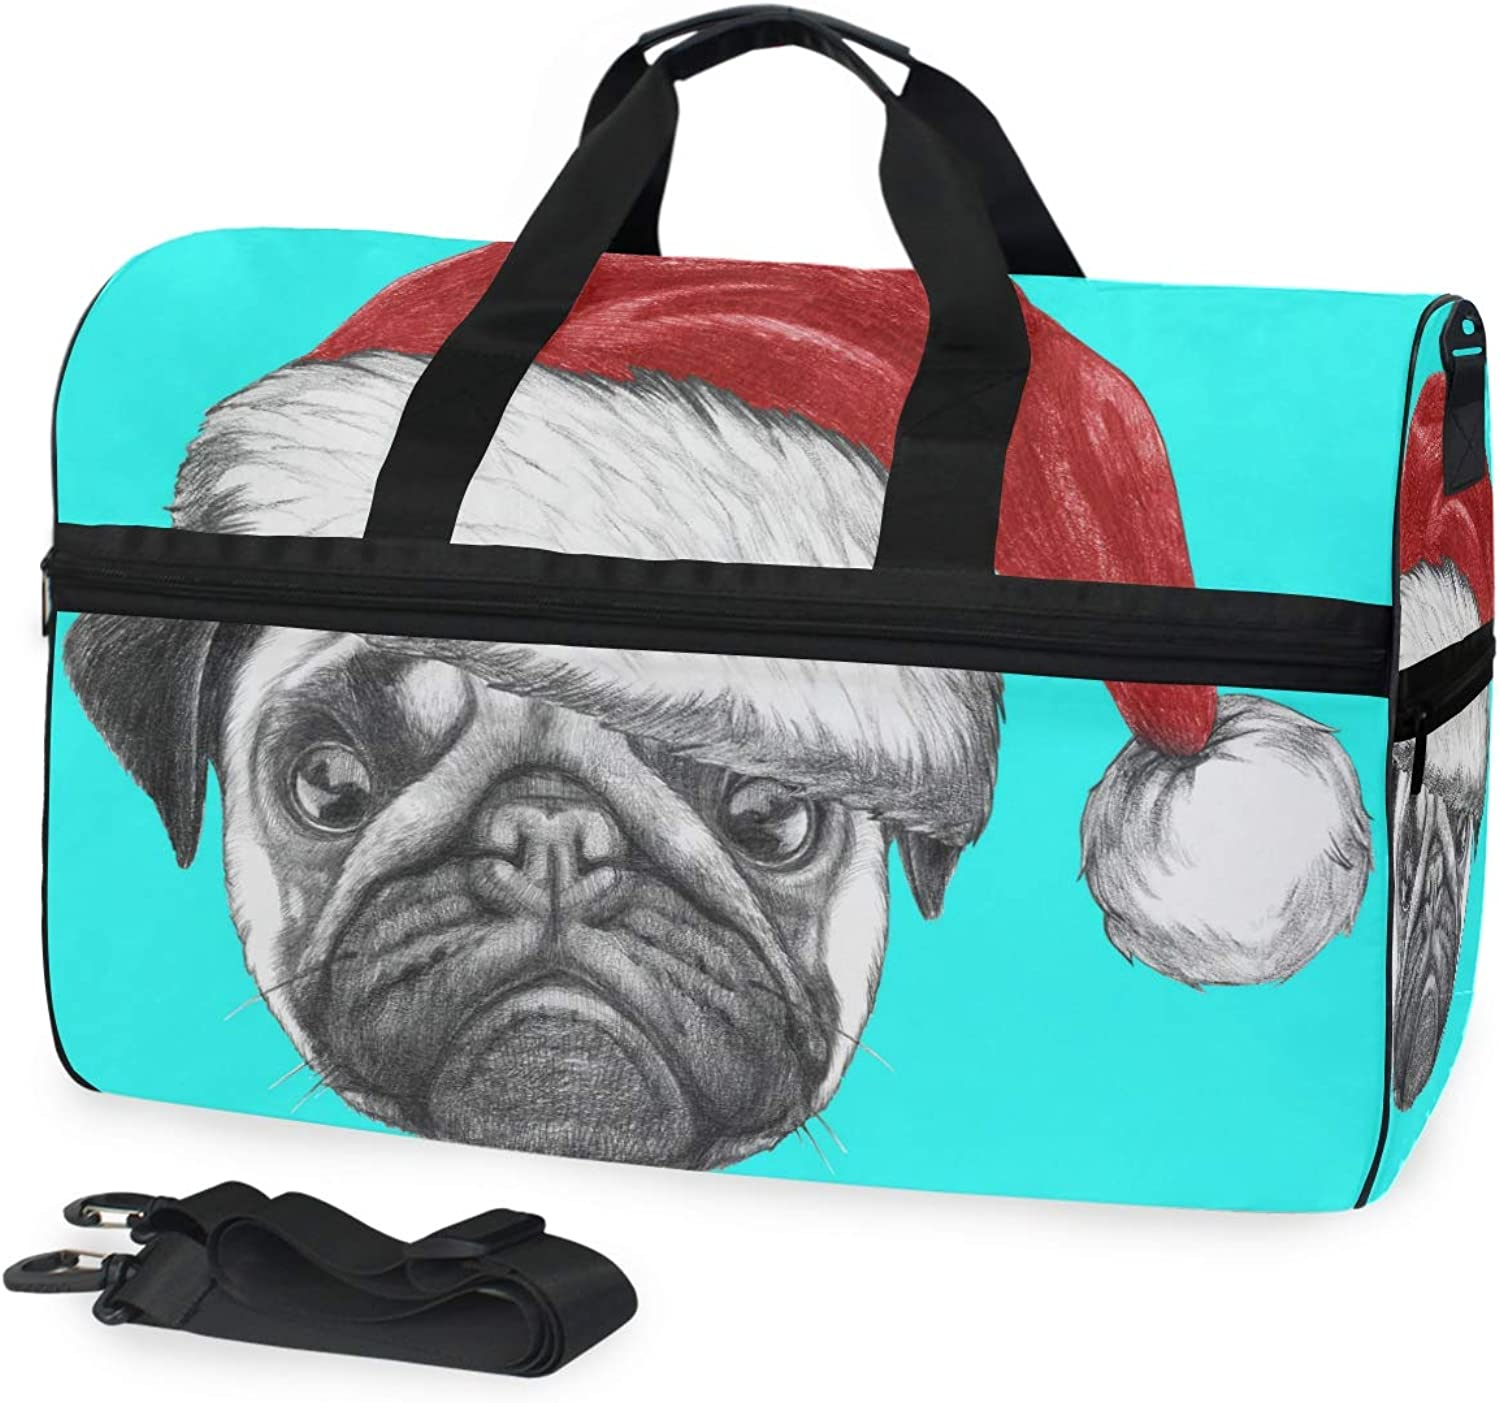 DEZIRO 45L Travel Duffel Bag Portrait of Pug Dog with Santa Hat Large Weekender Bag with shoes Compartment